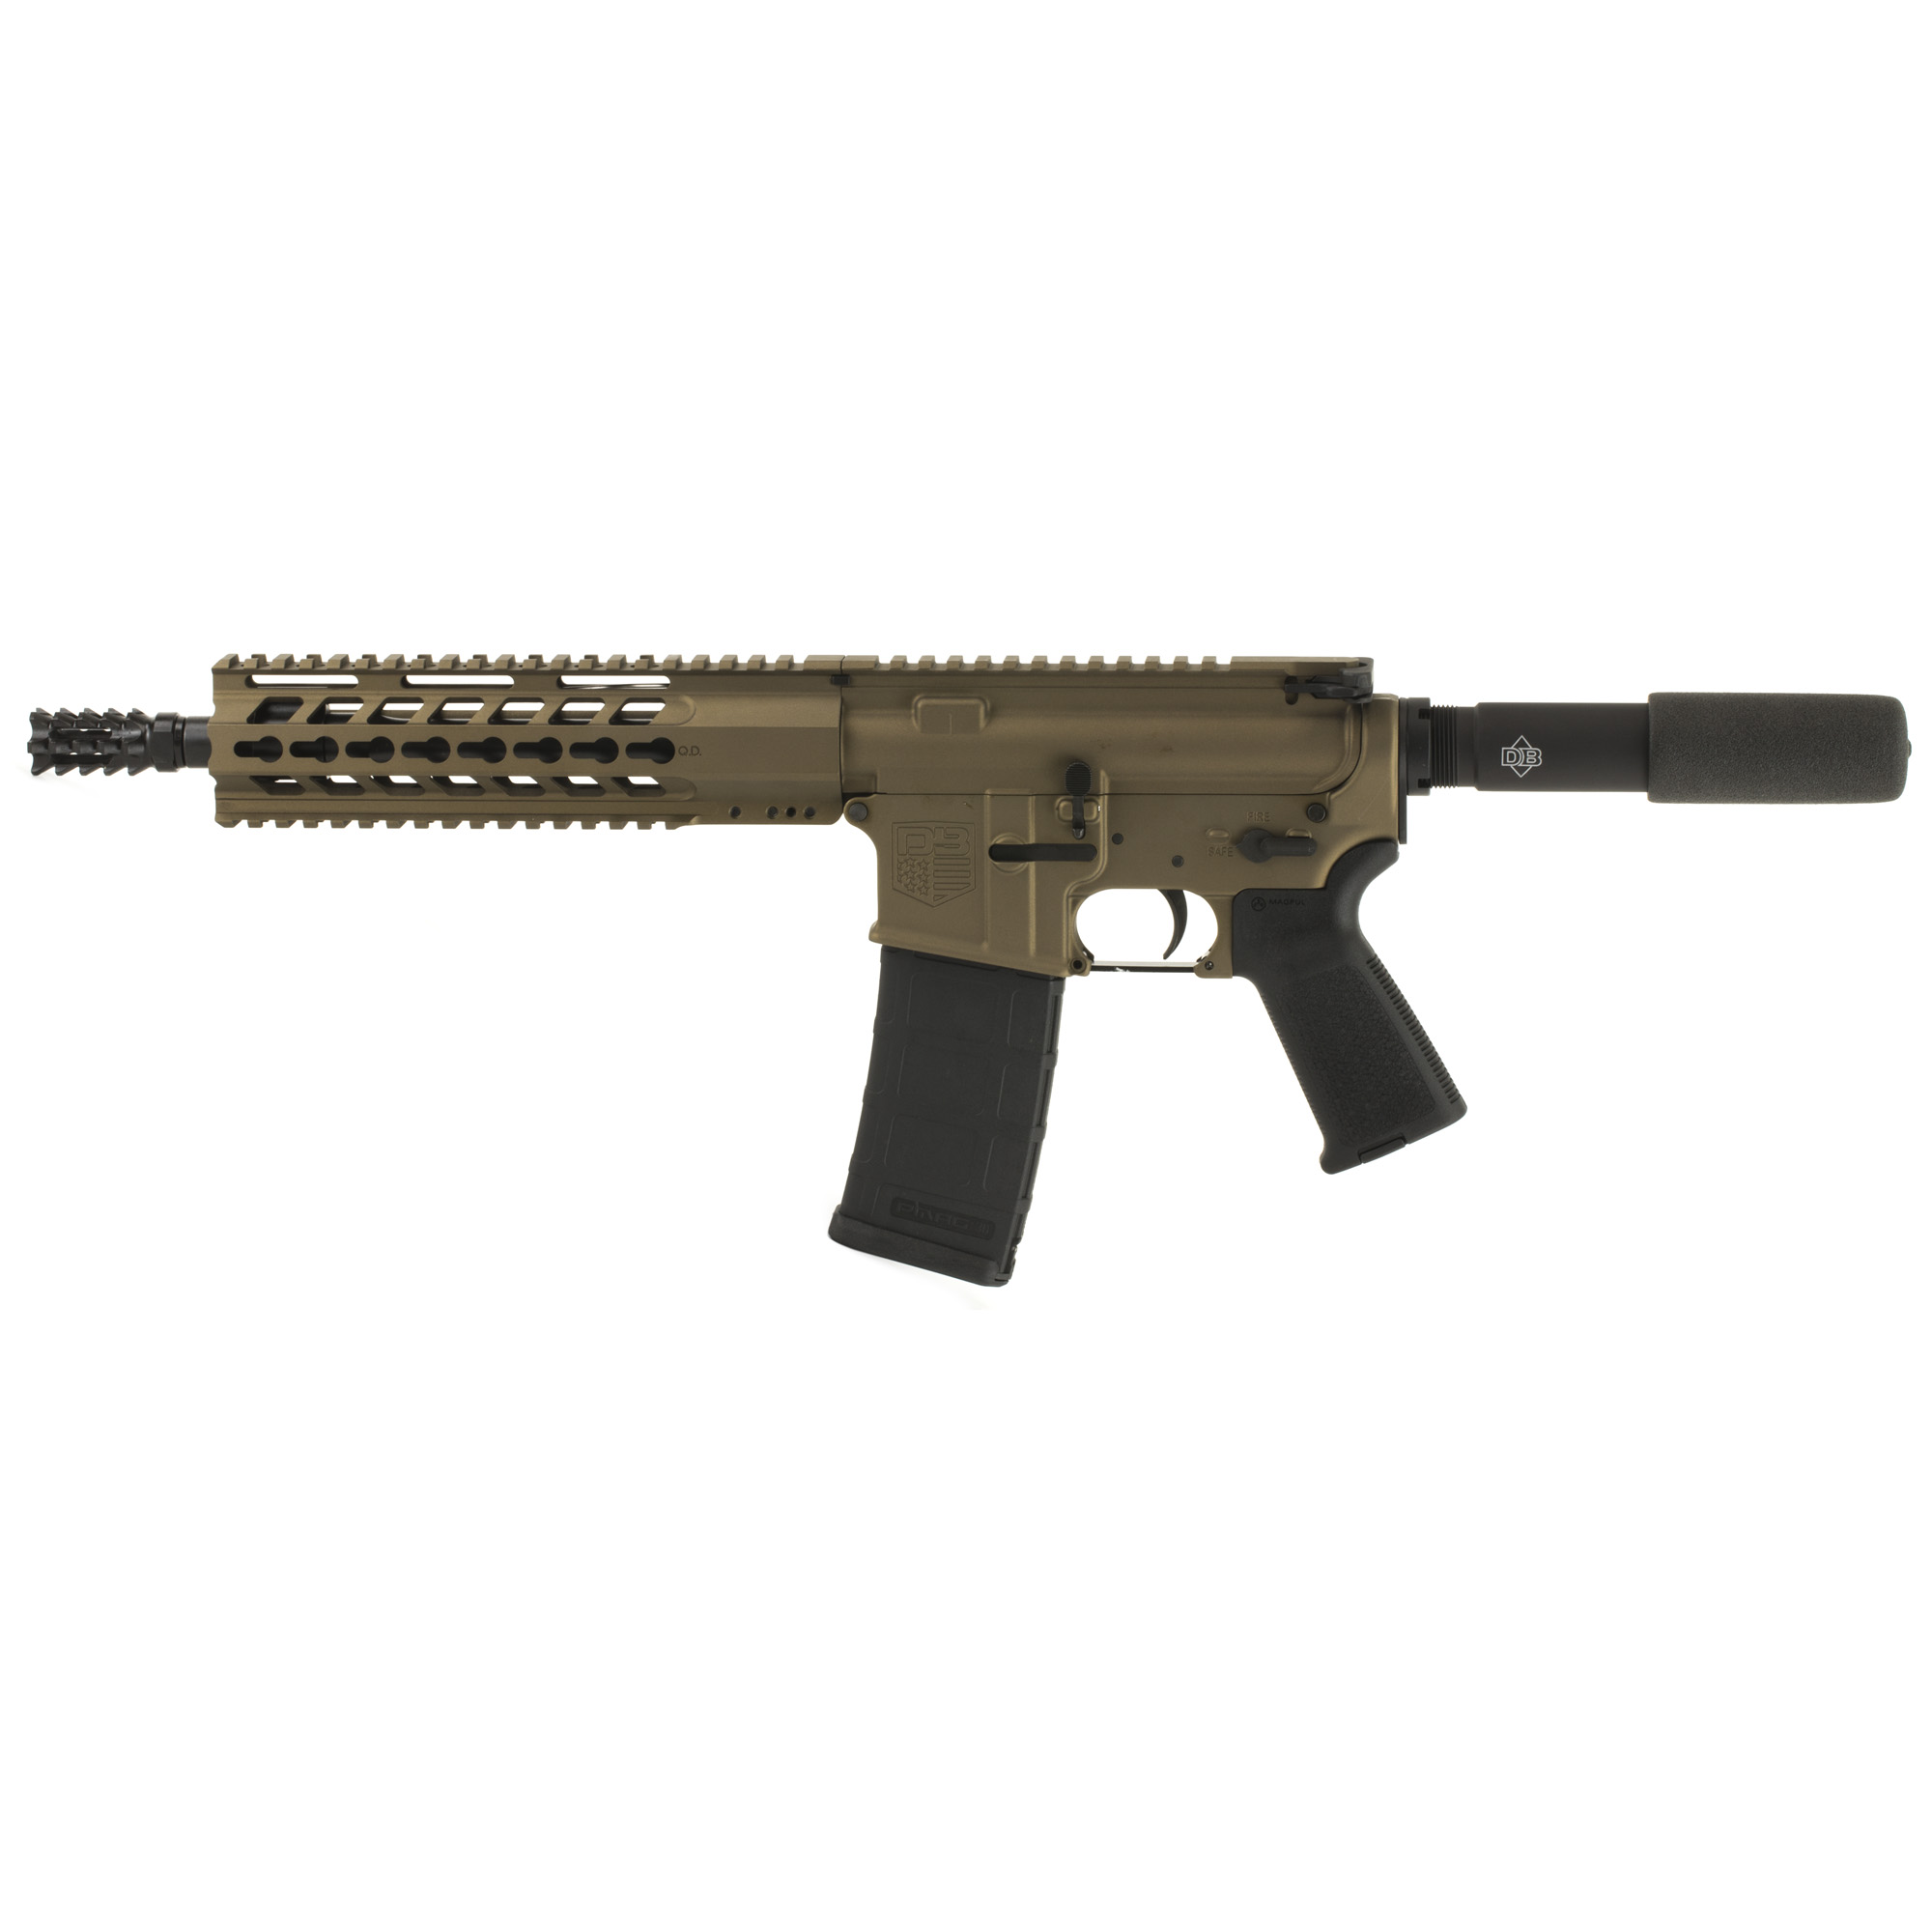 """Diamondback Firearms is proud to announce its NEW line of DB15 Pistols made entirely in the USA! Starting with the tried-and-true"""" U.S. Military-proven gas-impingement system and using only the highest quality components machined in Diamondback's CNC facility. The DB15 Pistol raises the bar when it comes to features and performance when compared to others."""